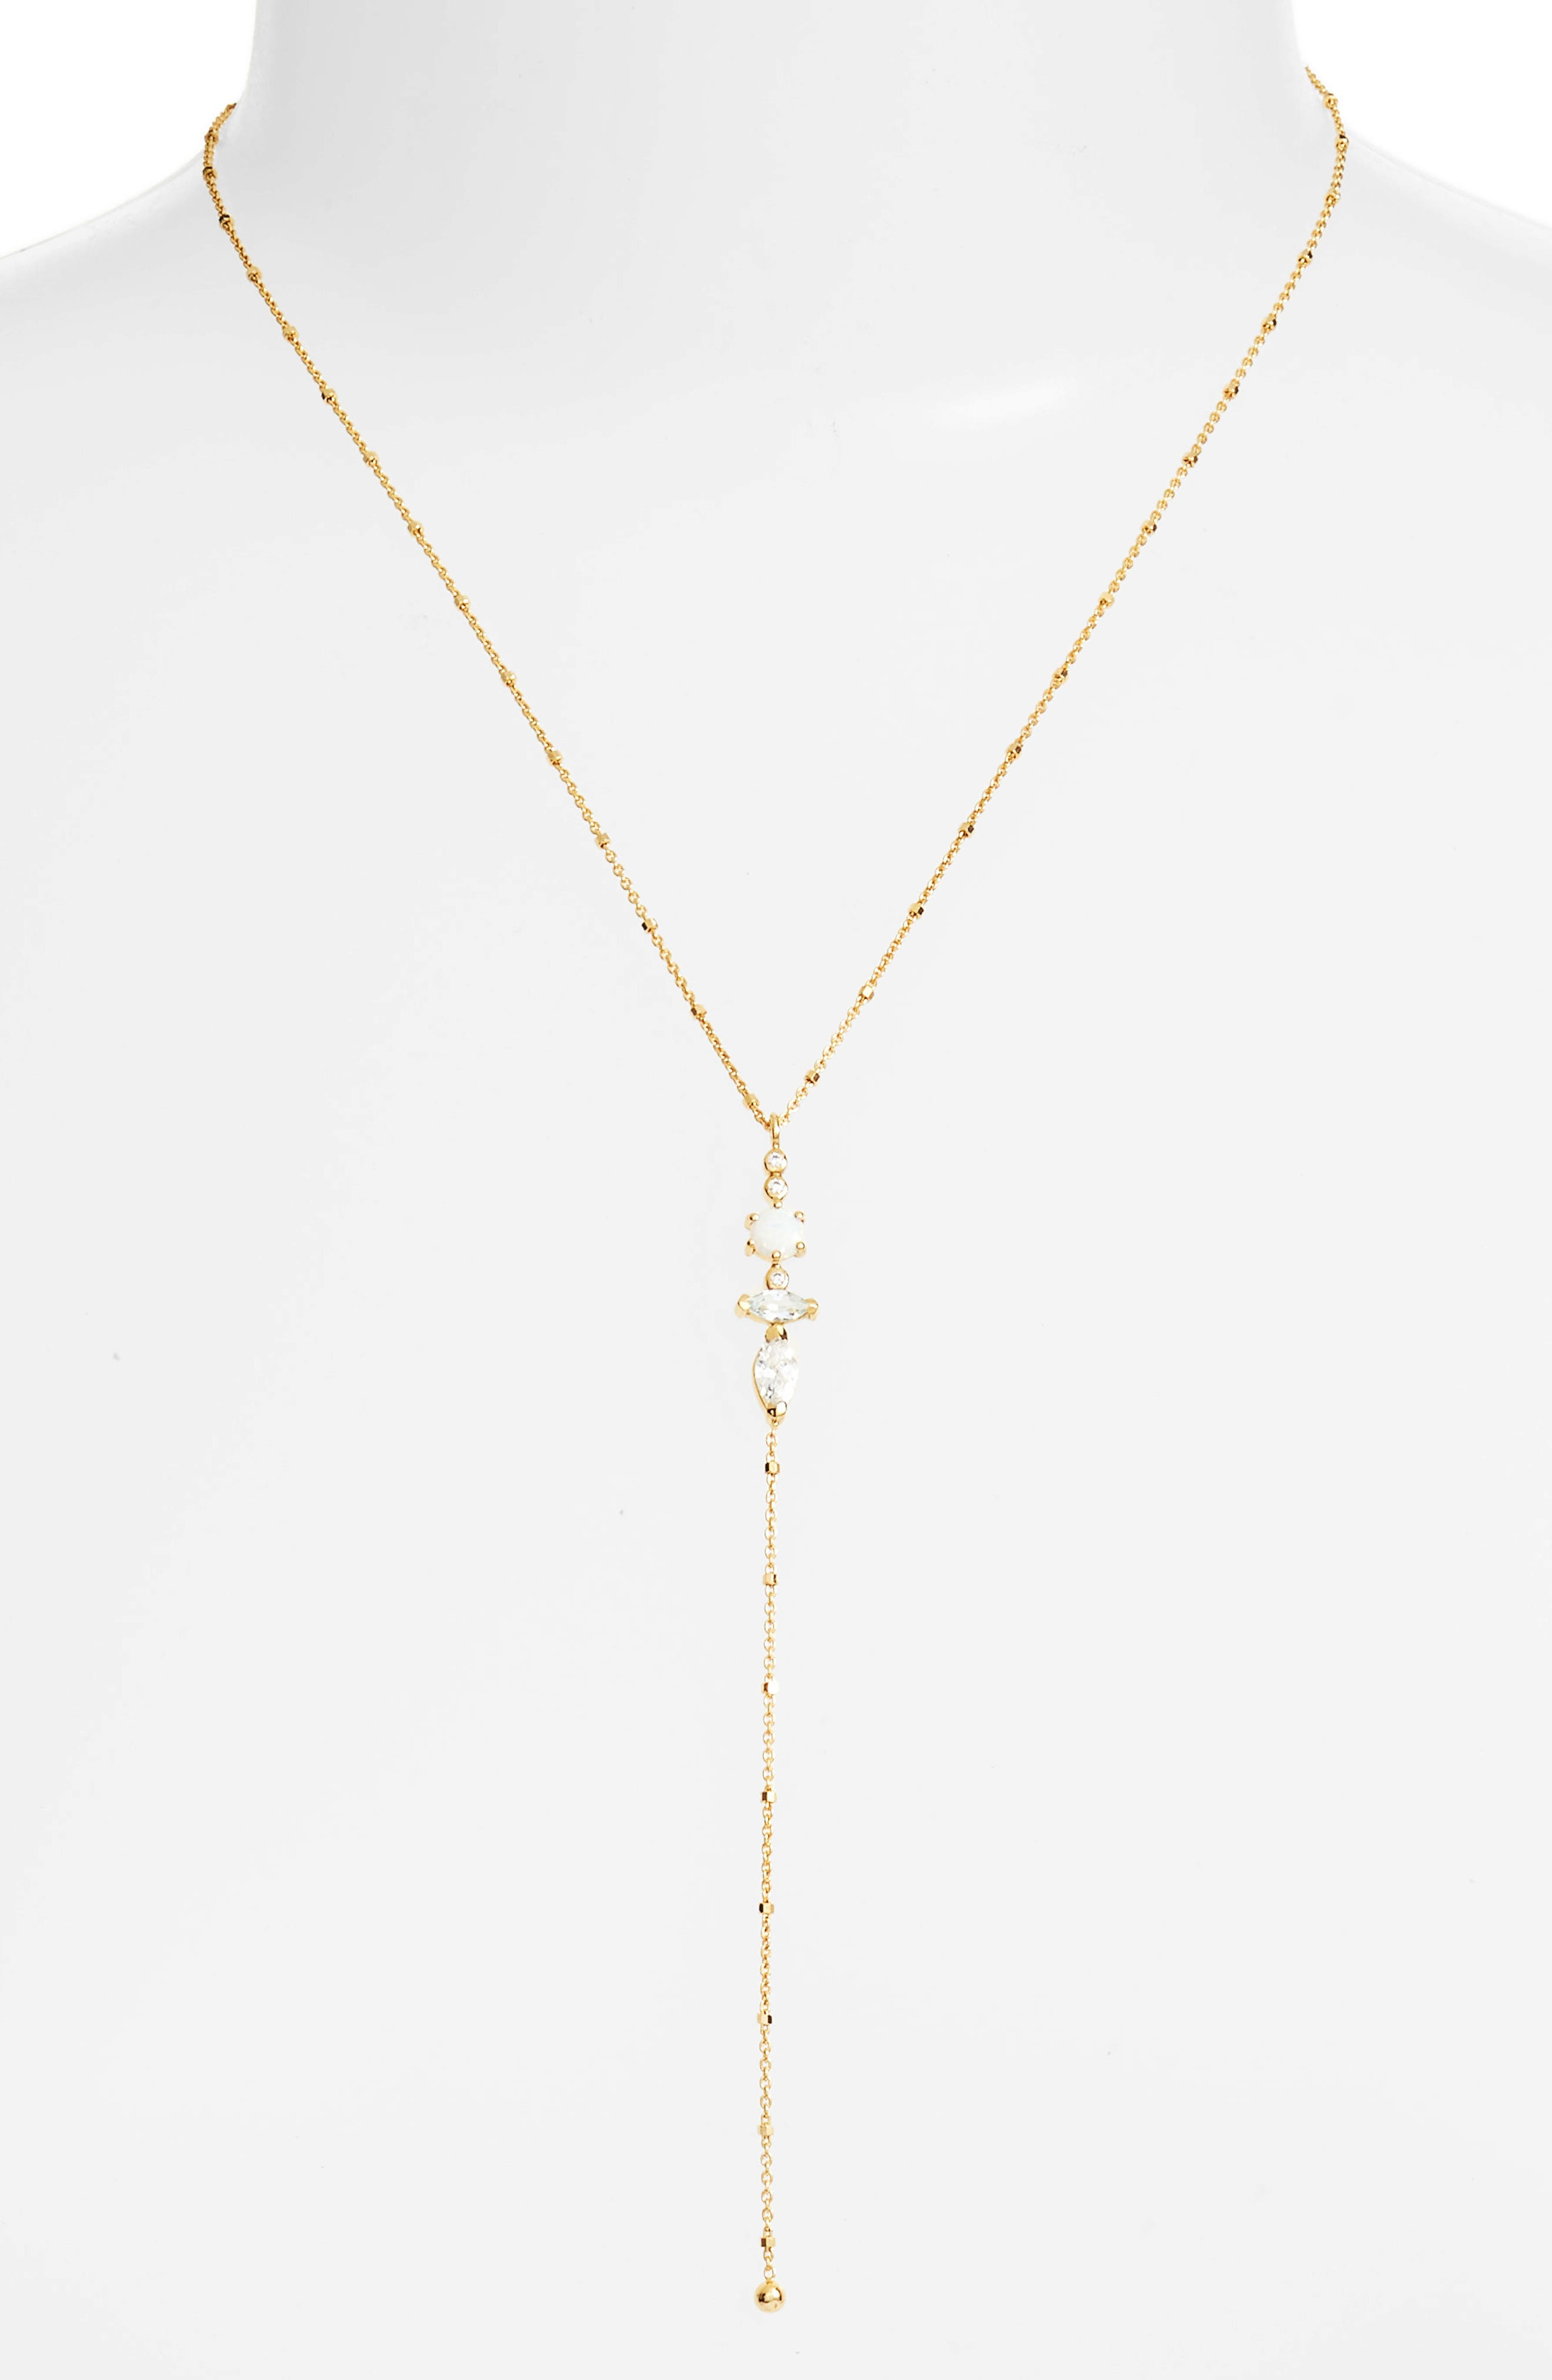 Sydney Multi-Stone Lariat Necklace,                             Main thumbnail 1, color,                             Gold